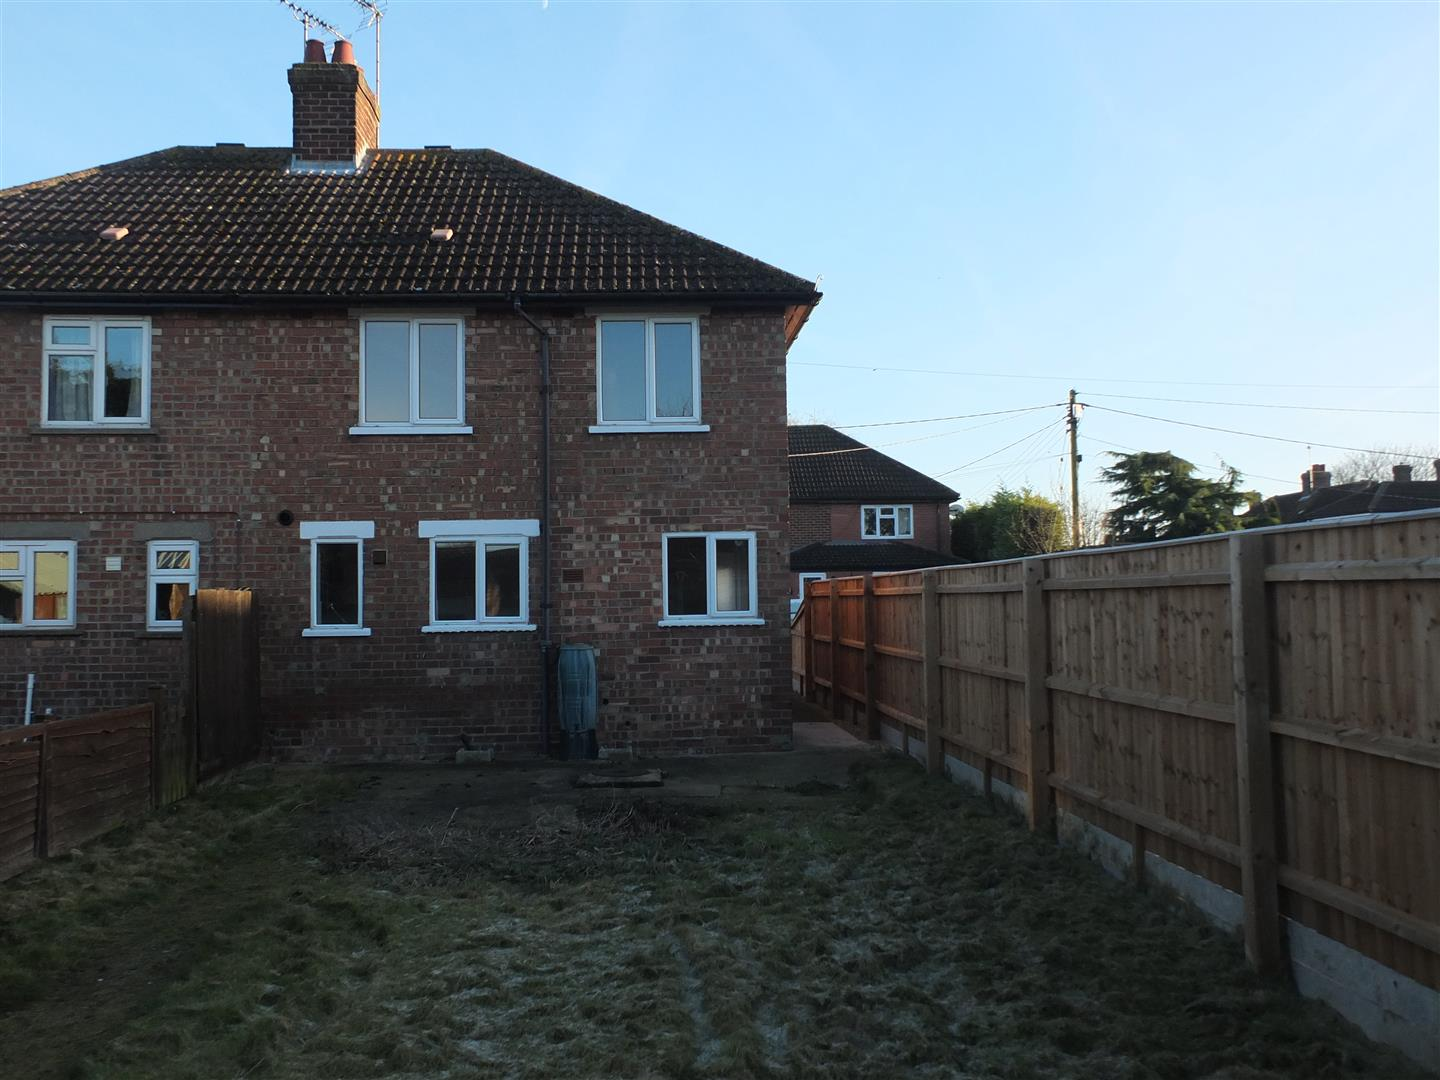 3 bed semi-detached house to rent in Long Sutton Spalding, PE12 9BT  - Property Image 10